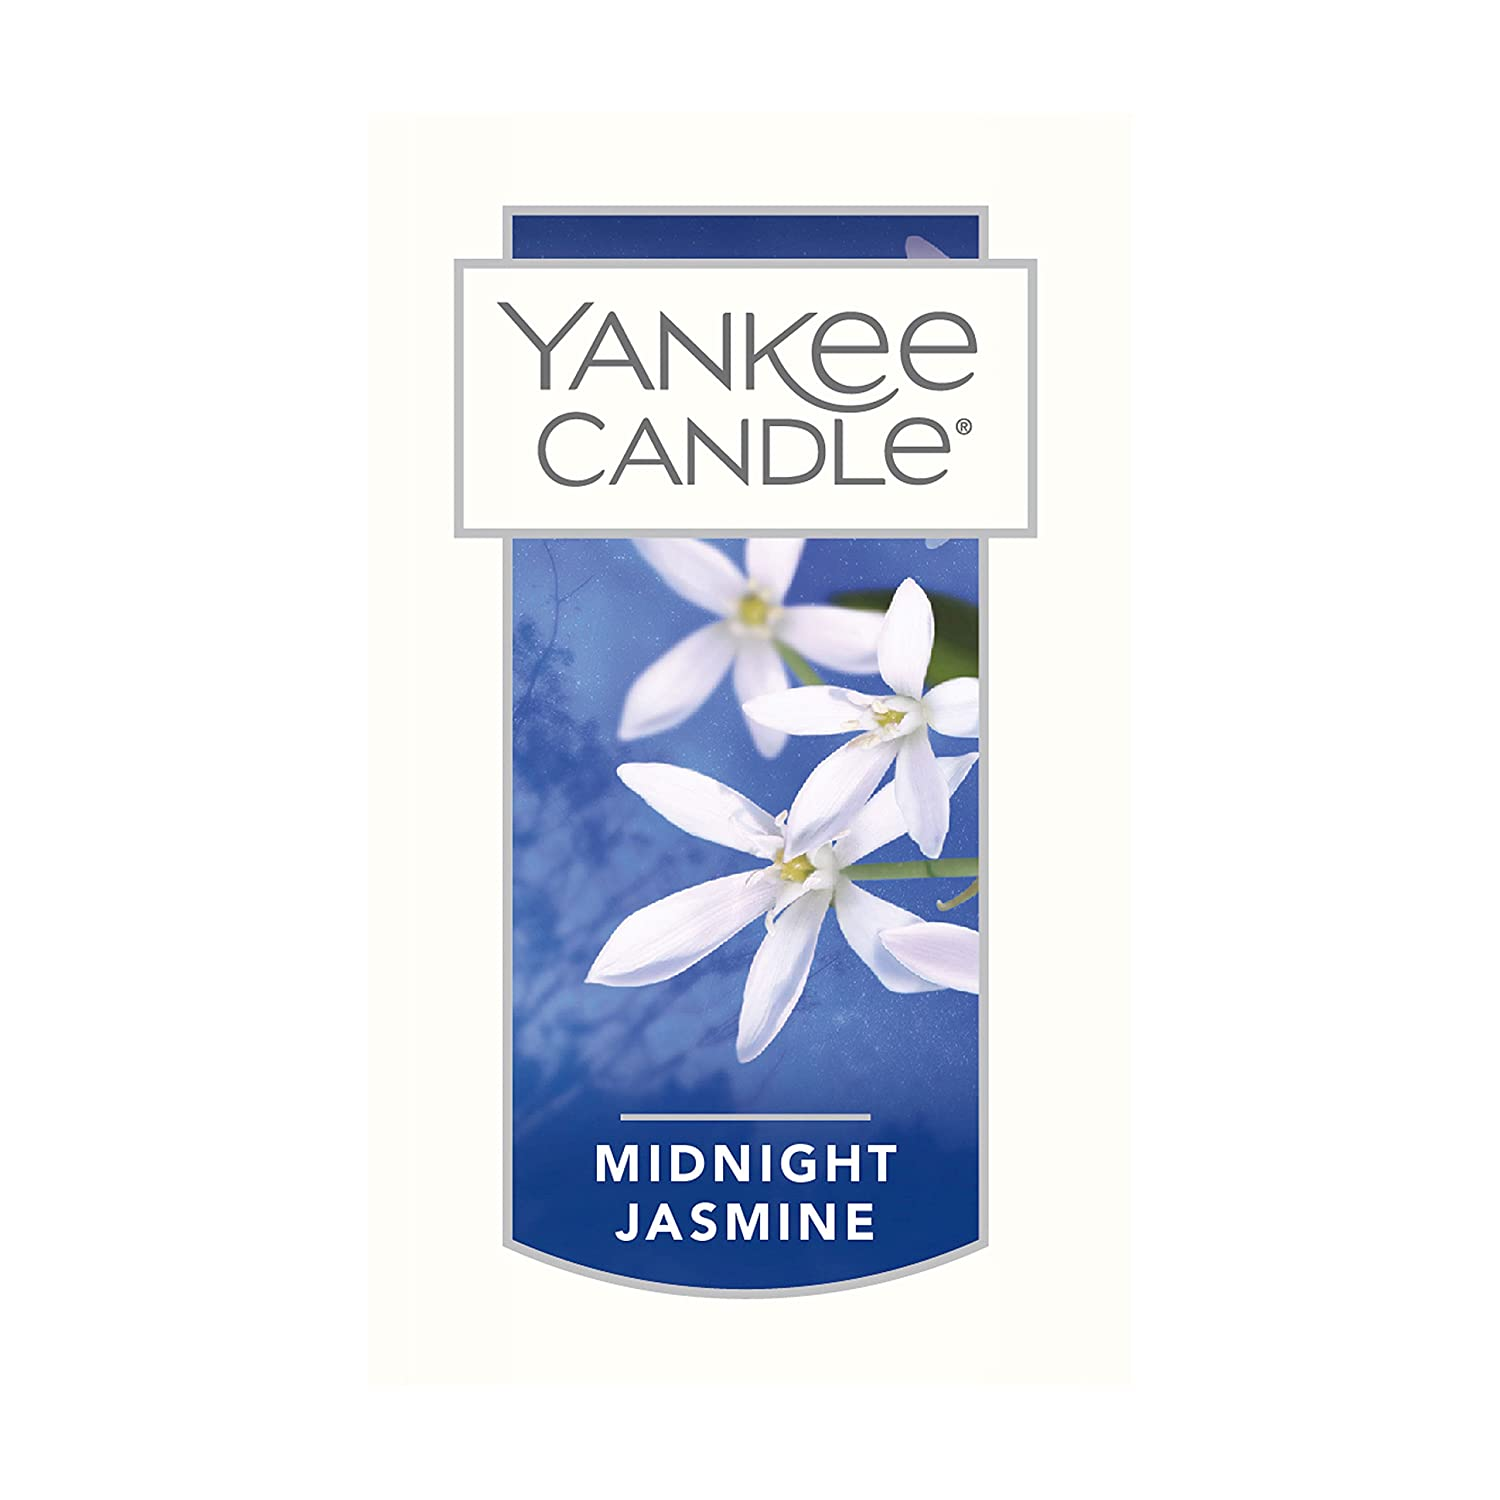 Midnight Jasmine Yankee Candle Company 1129547Z Yankee Candle Large 2-Wick Tumbler Candle